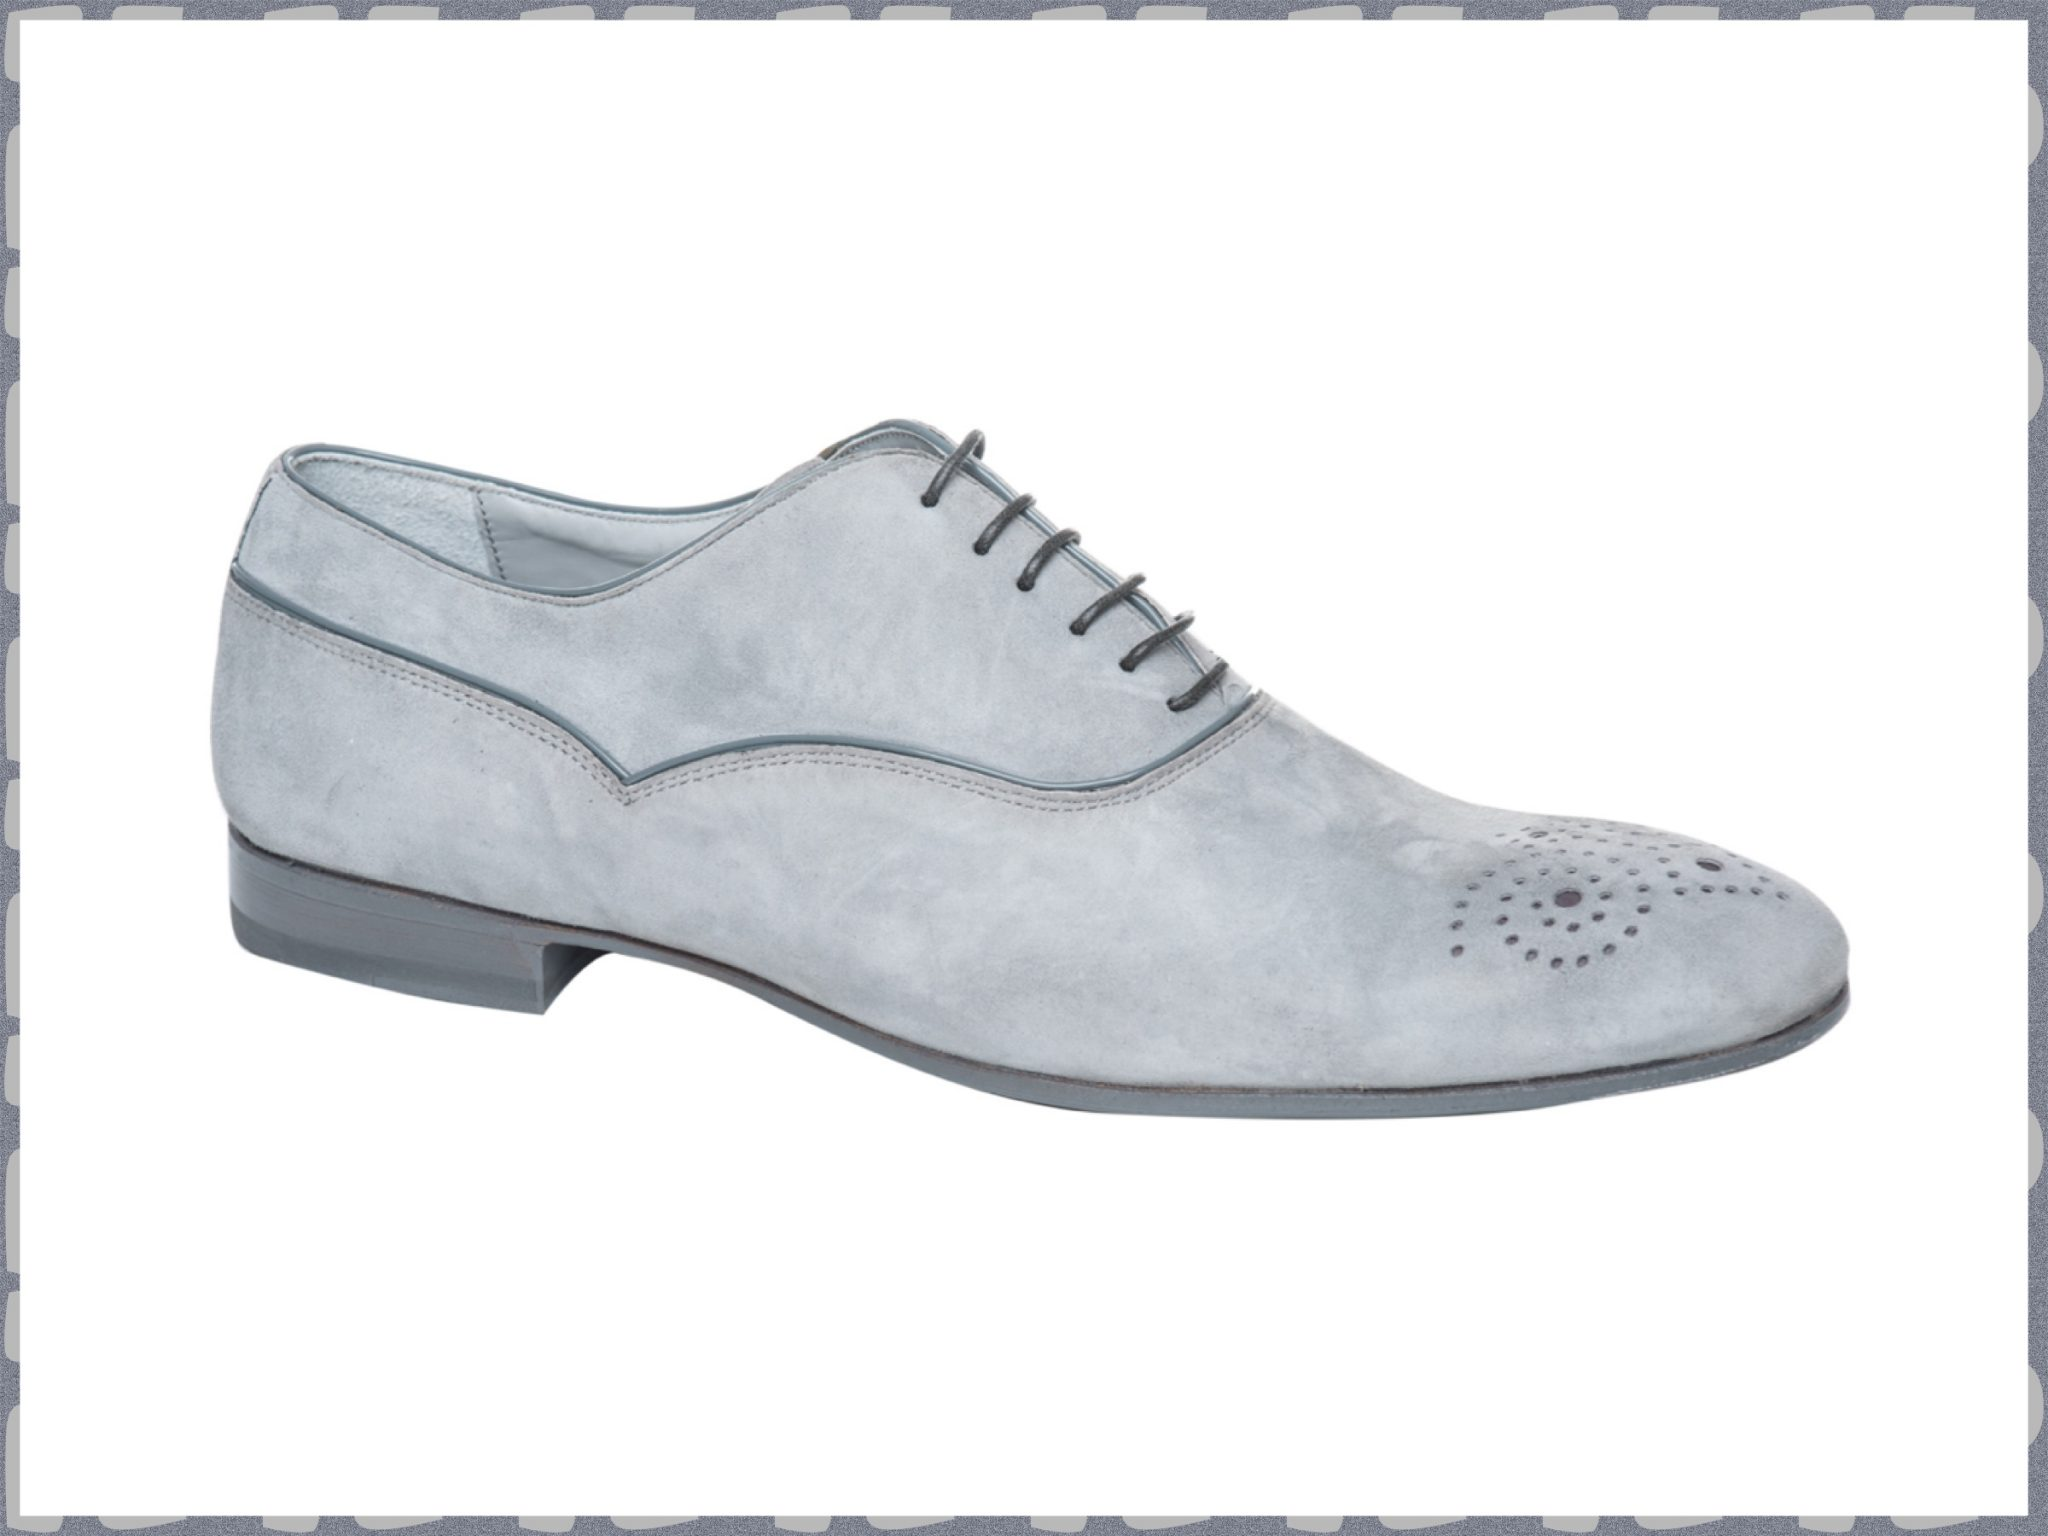 SS2013 Grey suede lace-up shoes by Franceschetti